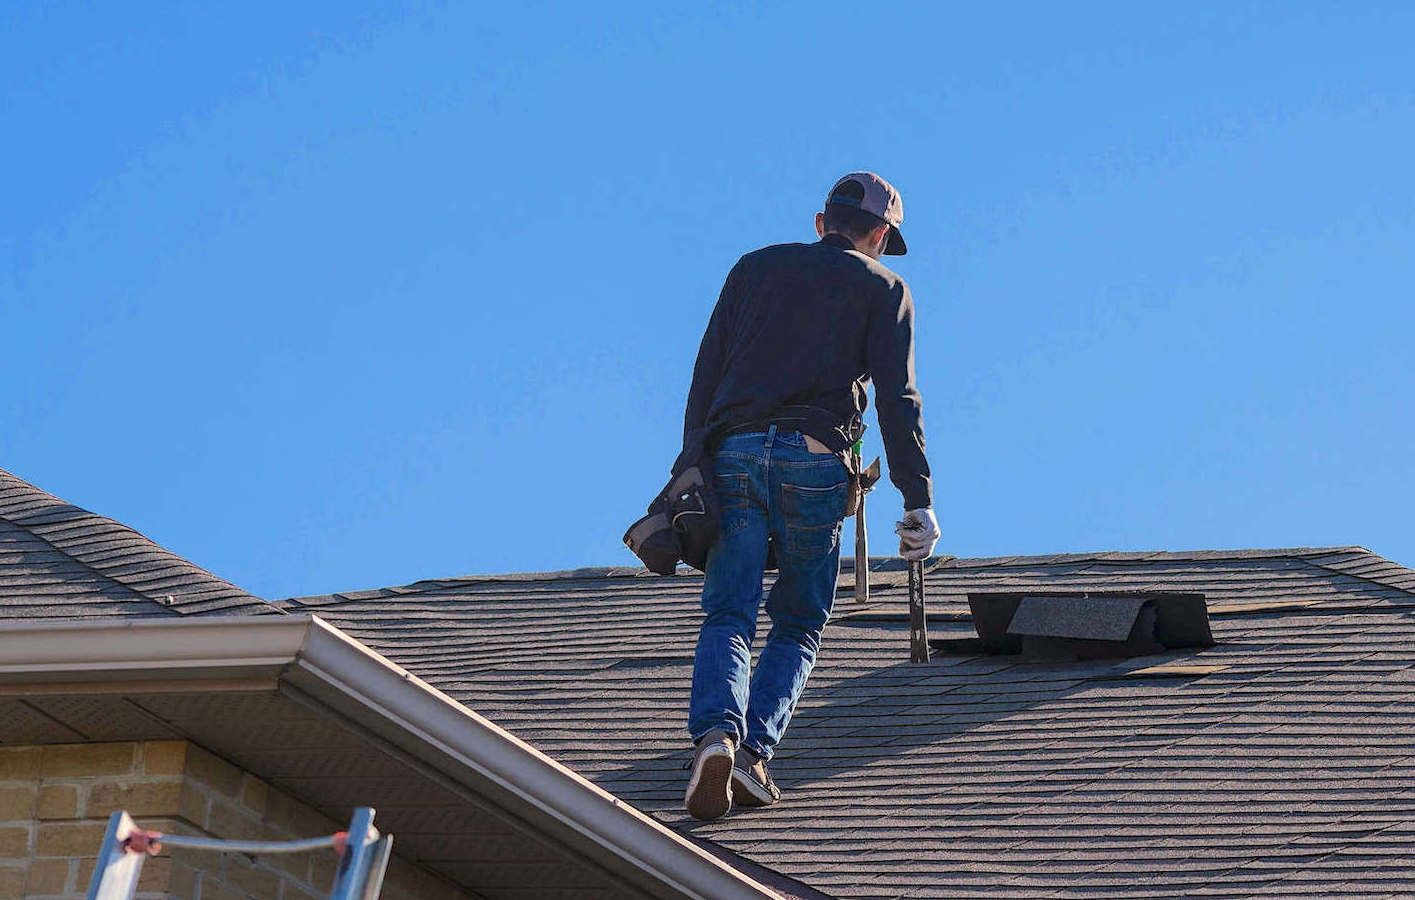 Dealing with roof damage insurance claims and roofing